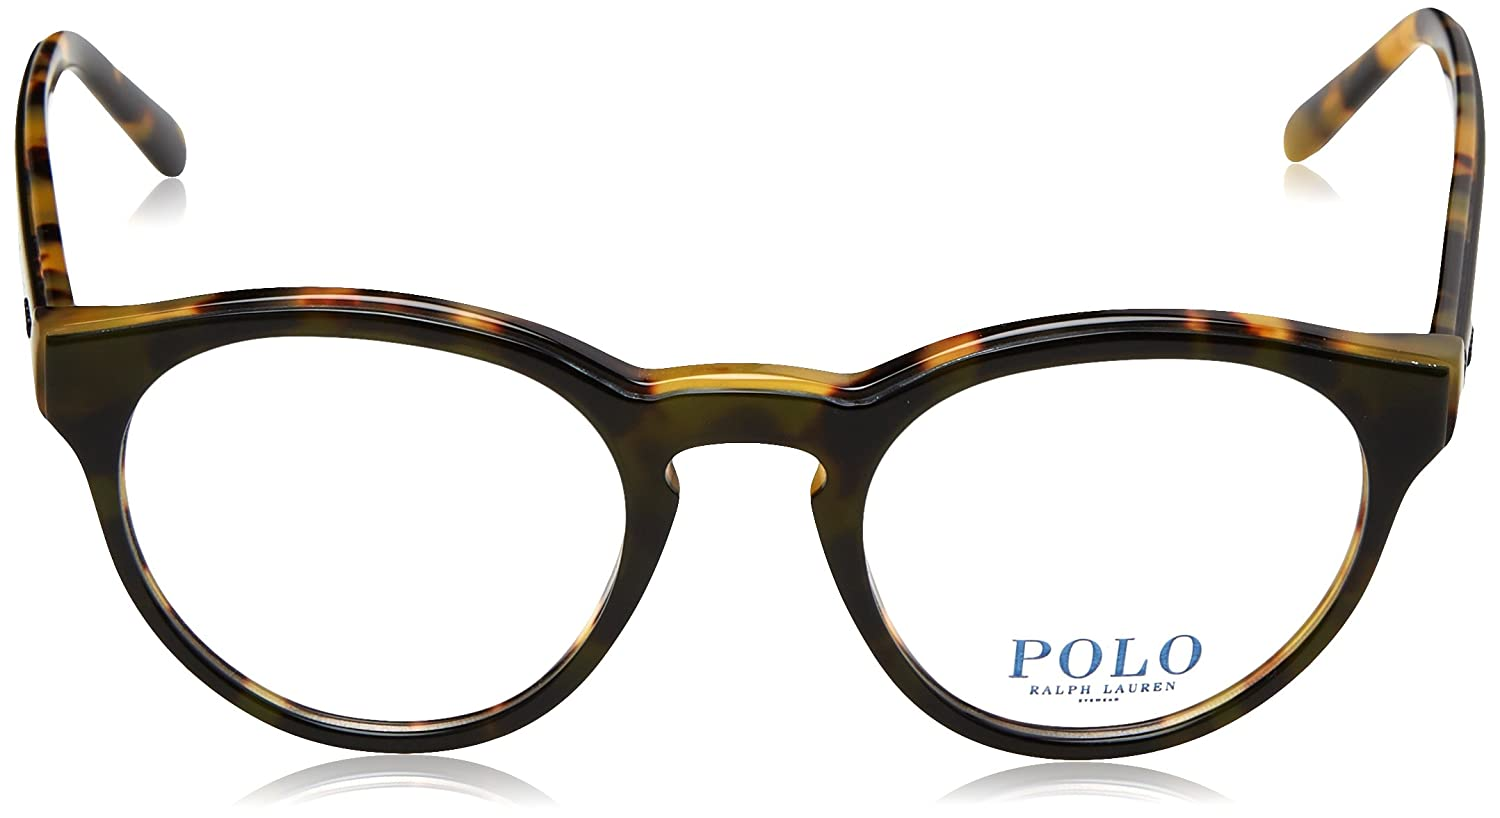 Polo Ralph Lauren - PH 2175, Rund Acetat Herrenbrillen: Amazon.de ...